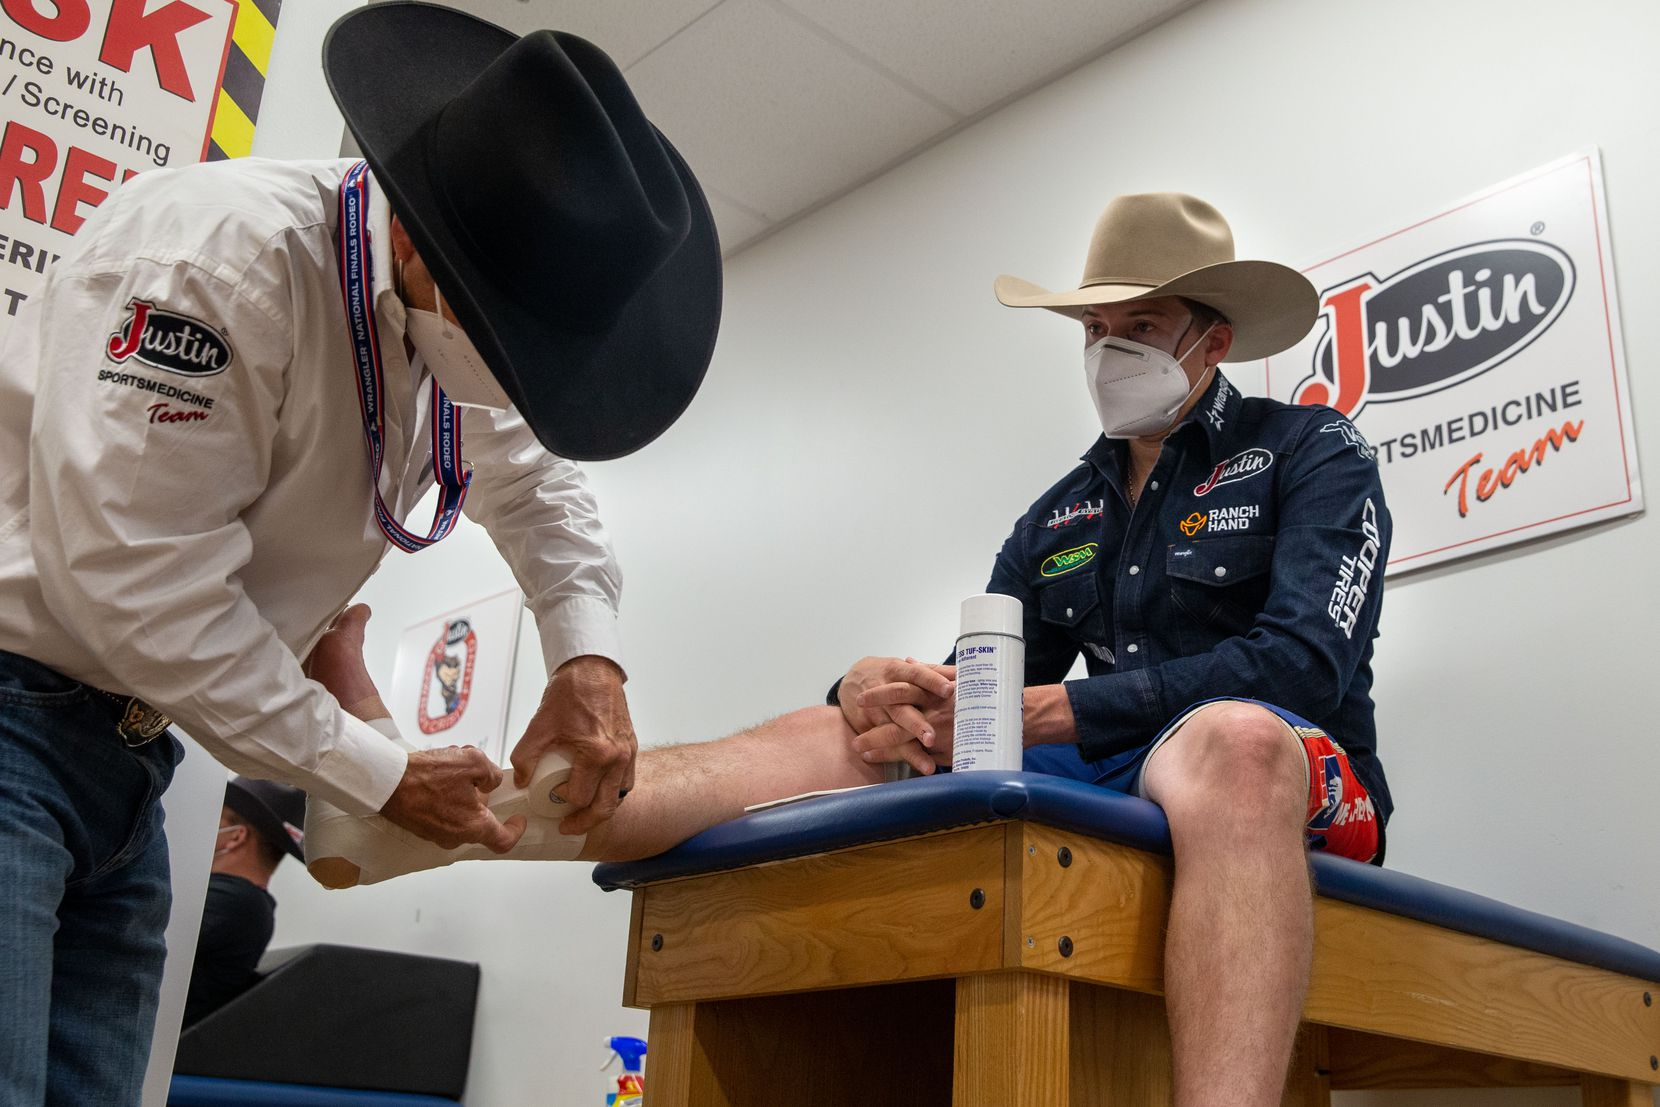 "Bullfighter Cody Webster (right) has his ankles taped by sports medicine team program director Rick Foster ahead of the bull riding event during the sixth night of the National Finals Rodeo at Globe Life Field in Arlington, Texas, on Tuesday, Dec. 10, 2020. Webster was named the Pro Rodeo Cowboys Association Bullfighter of the Year for 2020 on the opening day of the NFR. ""He's taking care of our bull riders, so we take care of him,"" Foster said. (Lynda M. González/The Dallas Morning News)"